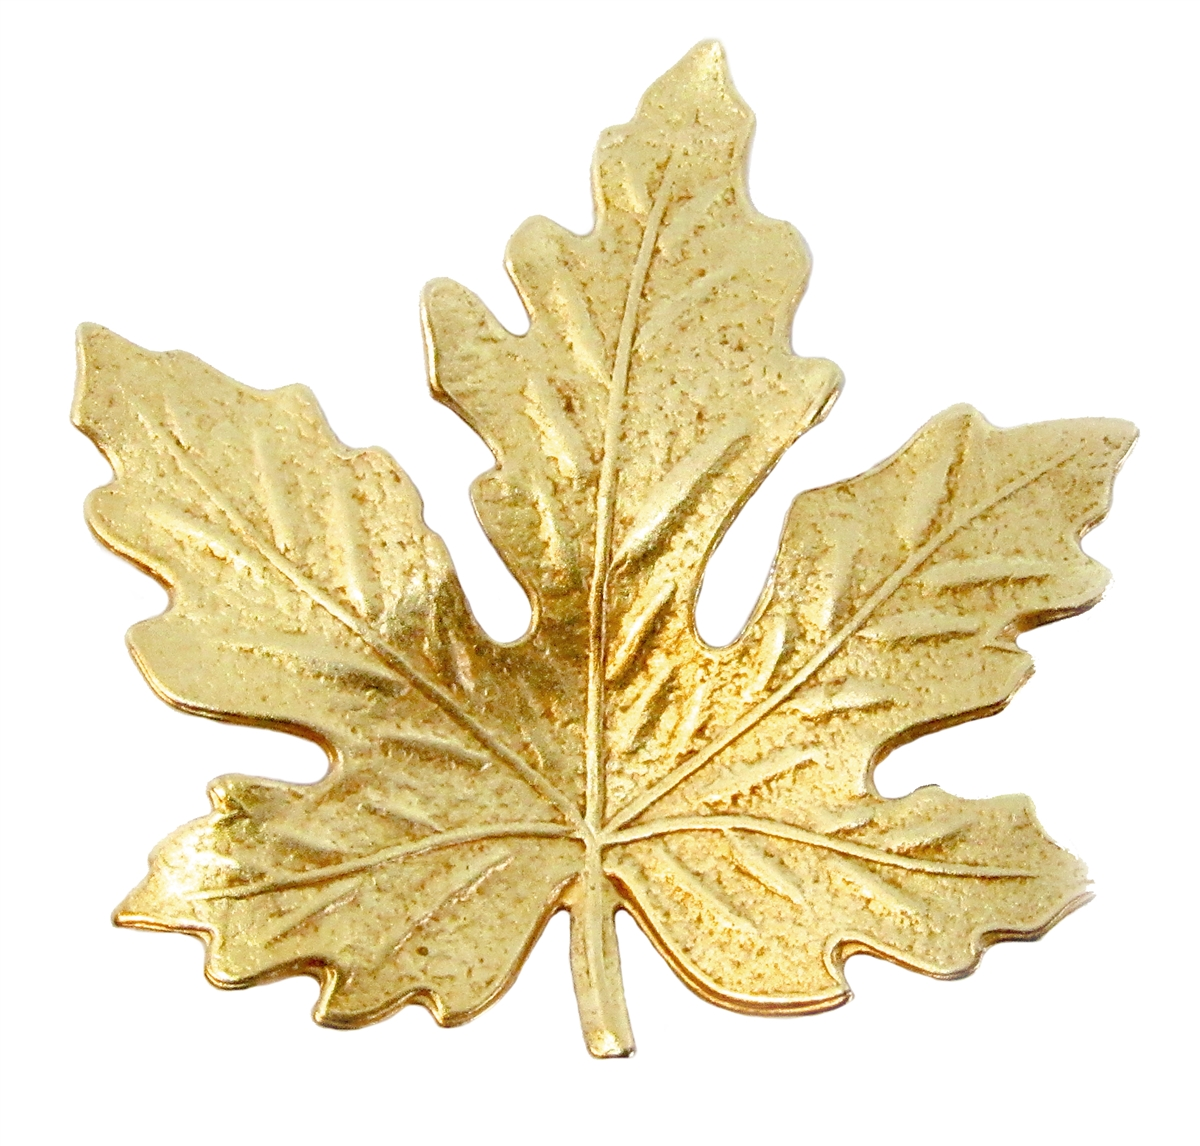 Maple Leaf Stamping Clic Gold Antique Br Stampings Leaves 41x41mm